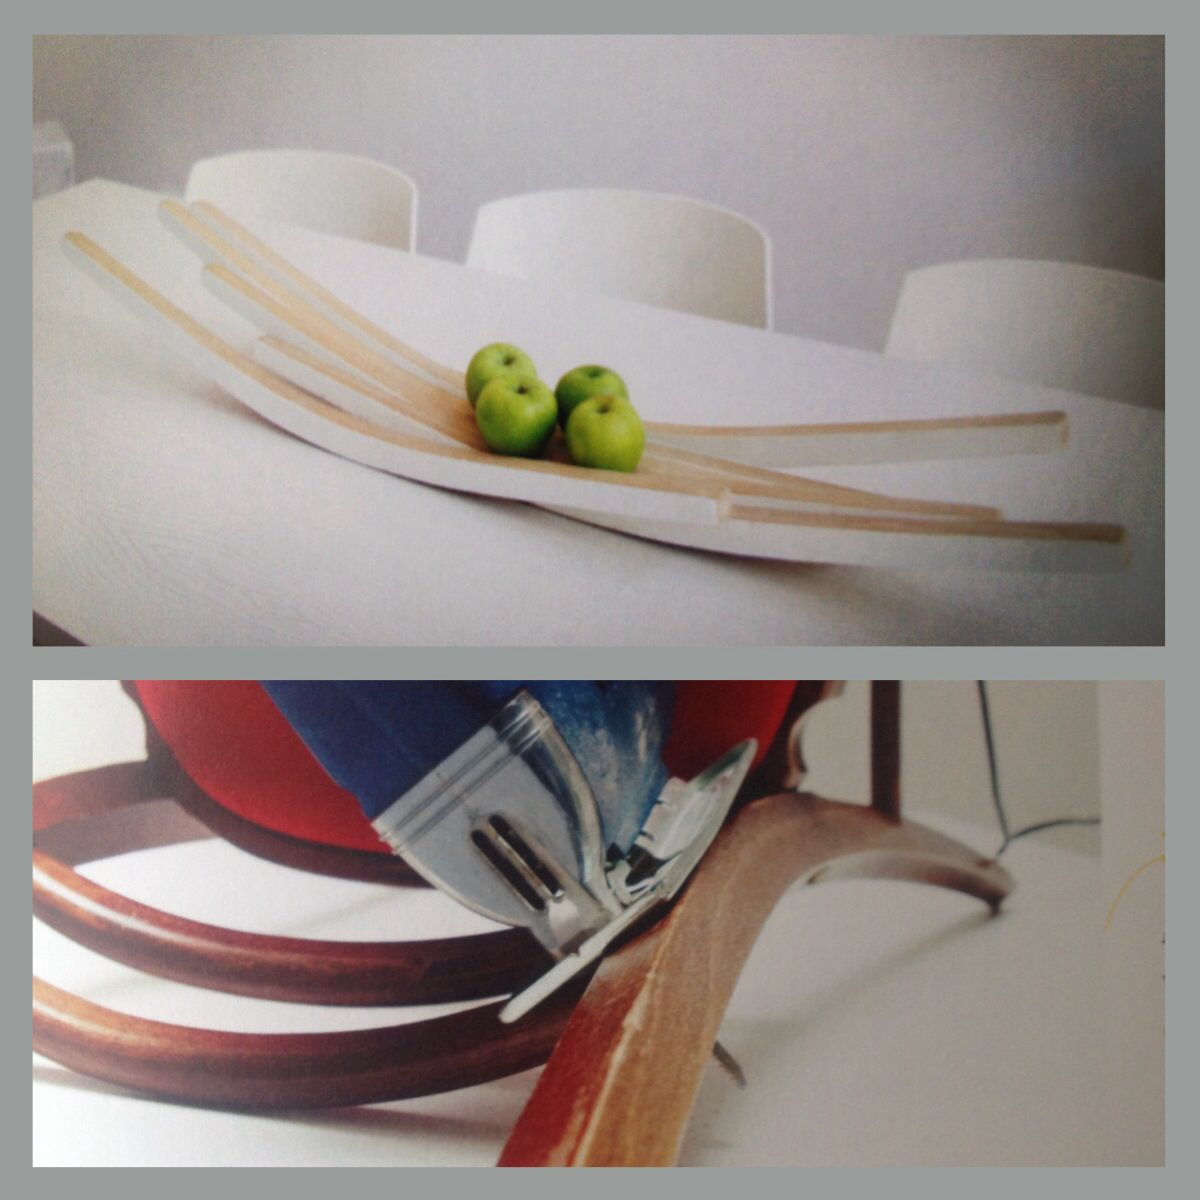 Upcycling by #evypuelinckx: chair legs become fruitbowl